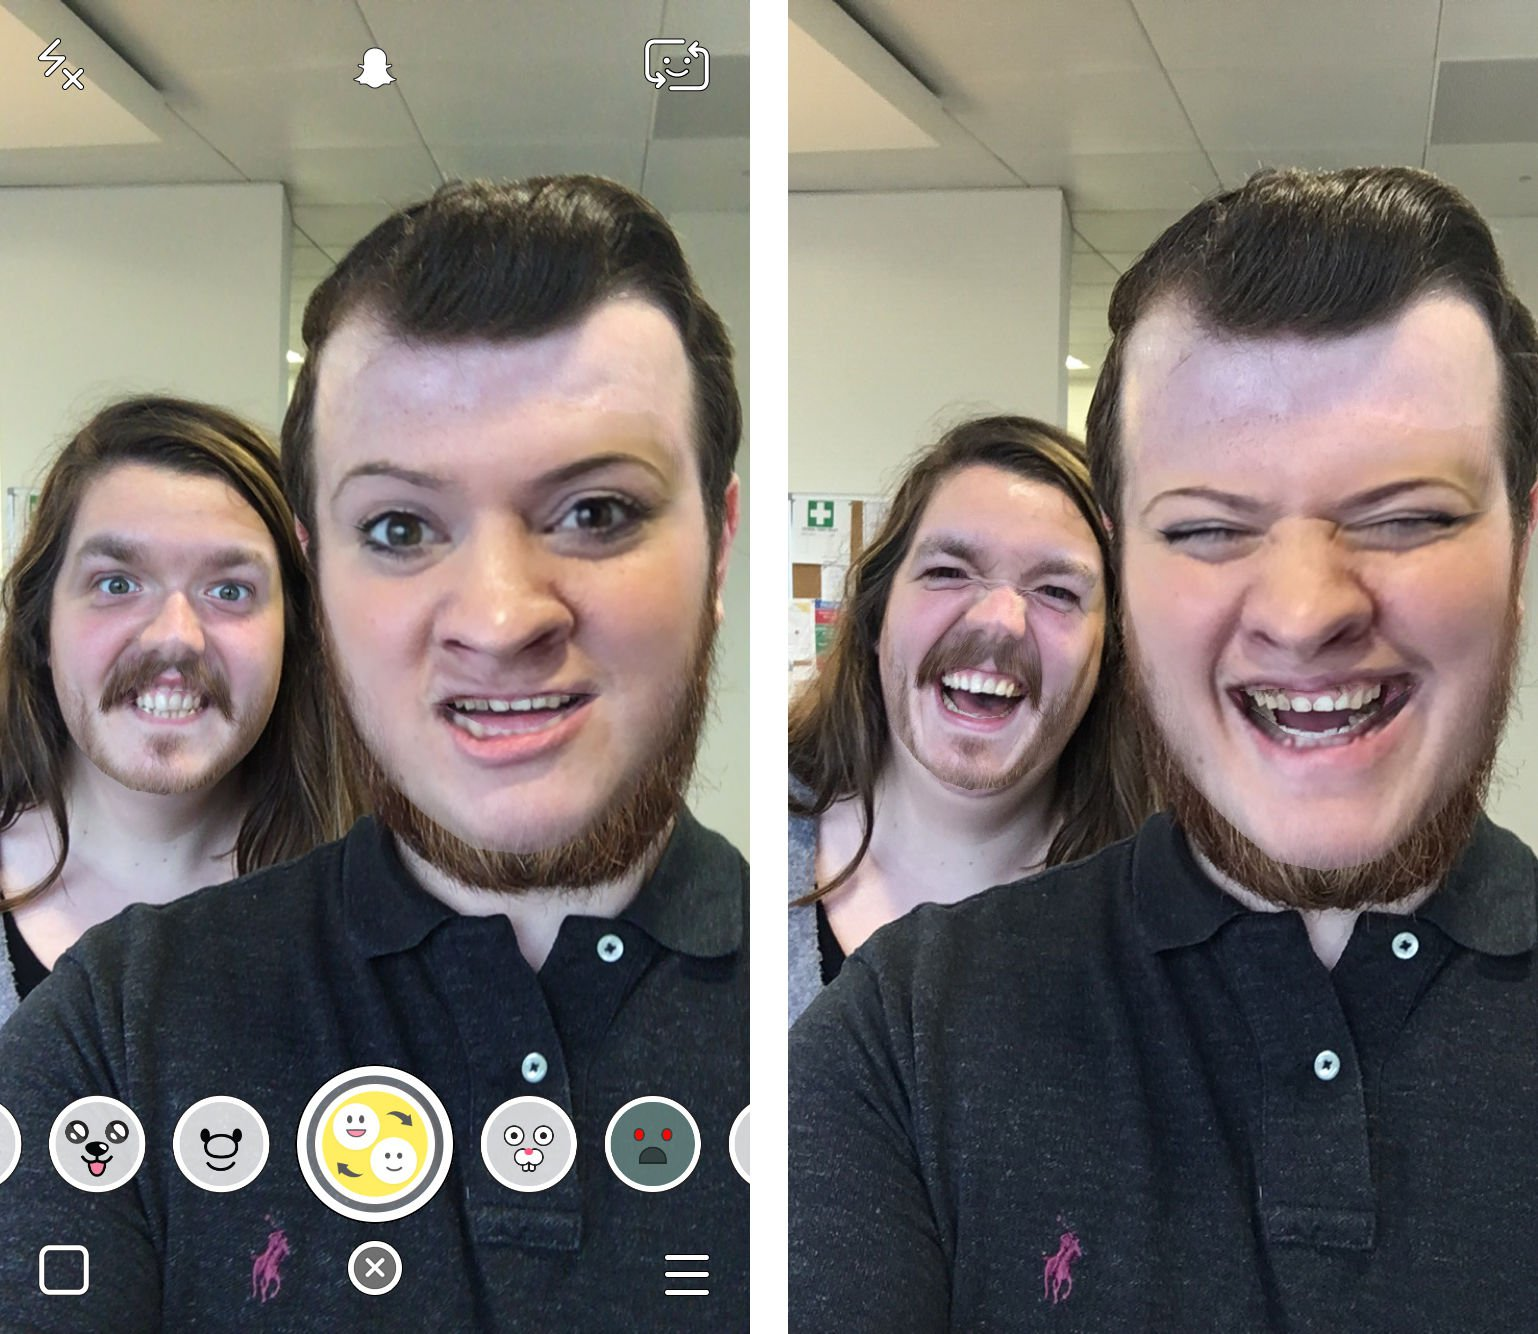 how-to-face-swap-2